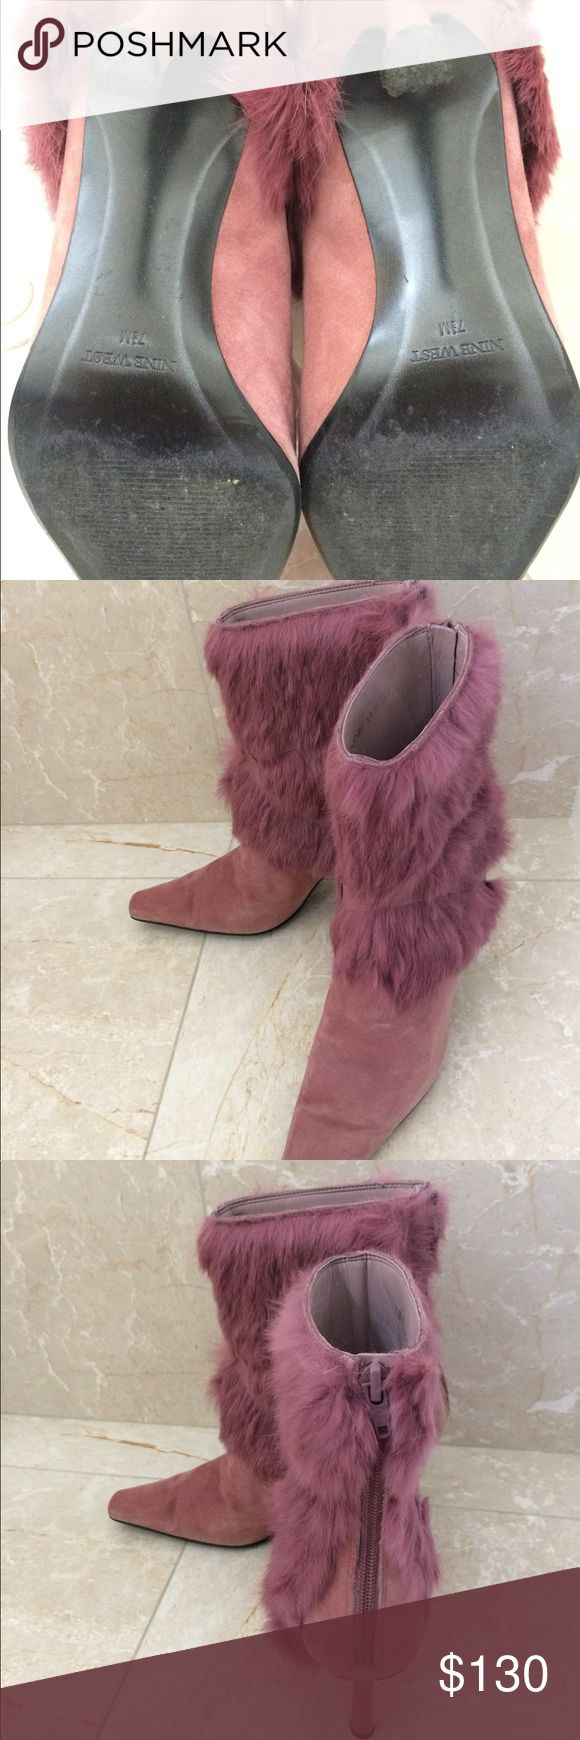 Booties with real fur for sale Very cute and awesome condition booties. With real rabbit fur Nine West Shoes Ankle Boots & Booties